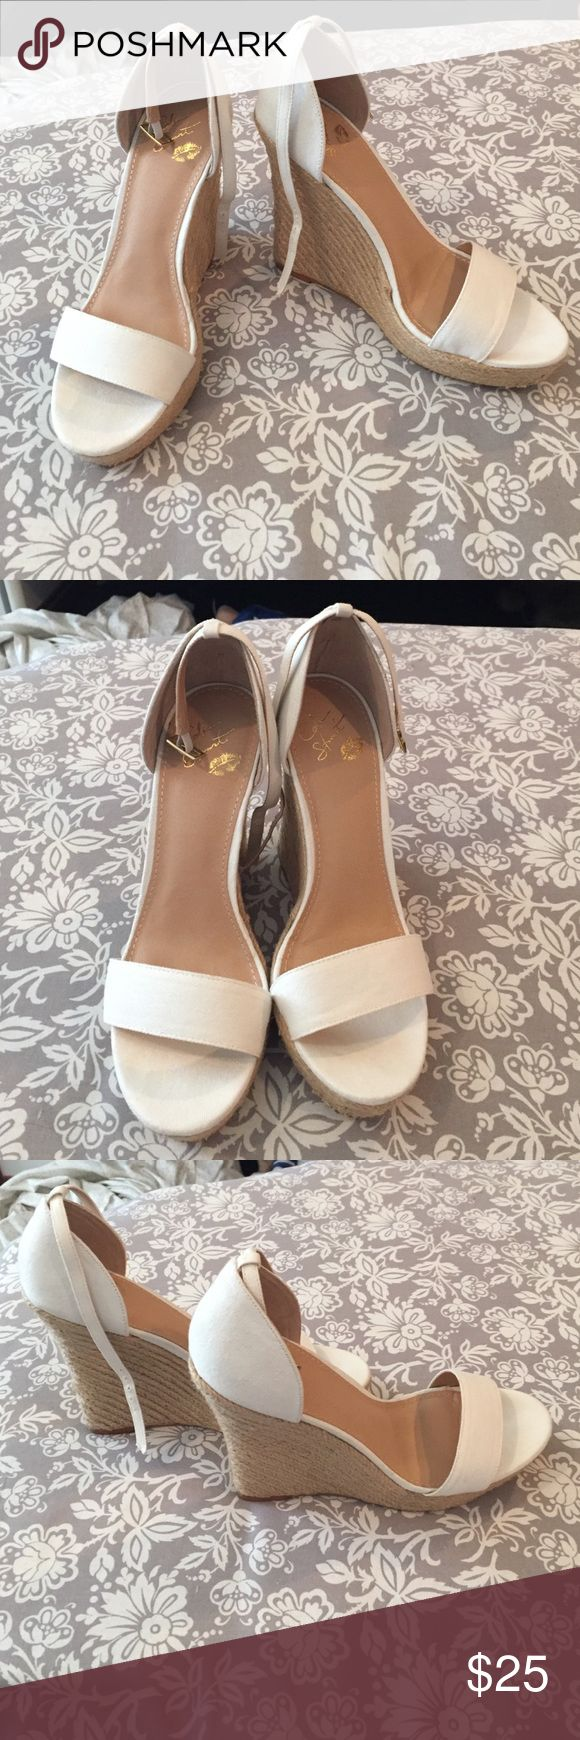 Colin Stuart wedges 🌞 EUC Colin Stuart white and tan wedges with adjustable strap, only flaw is marks on the bottom!🌞 Colin Stuart Shoes Wedges